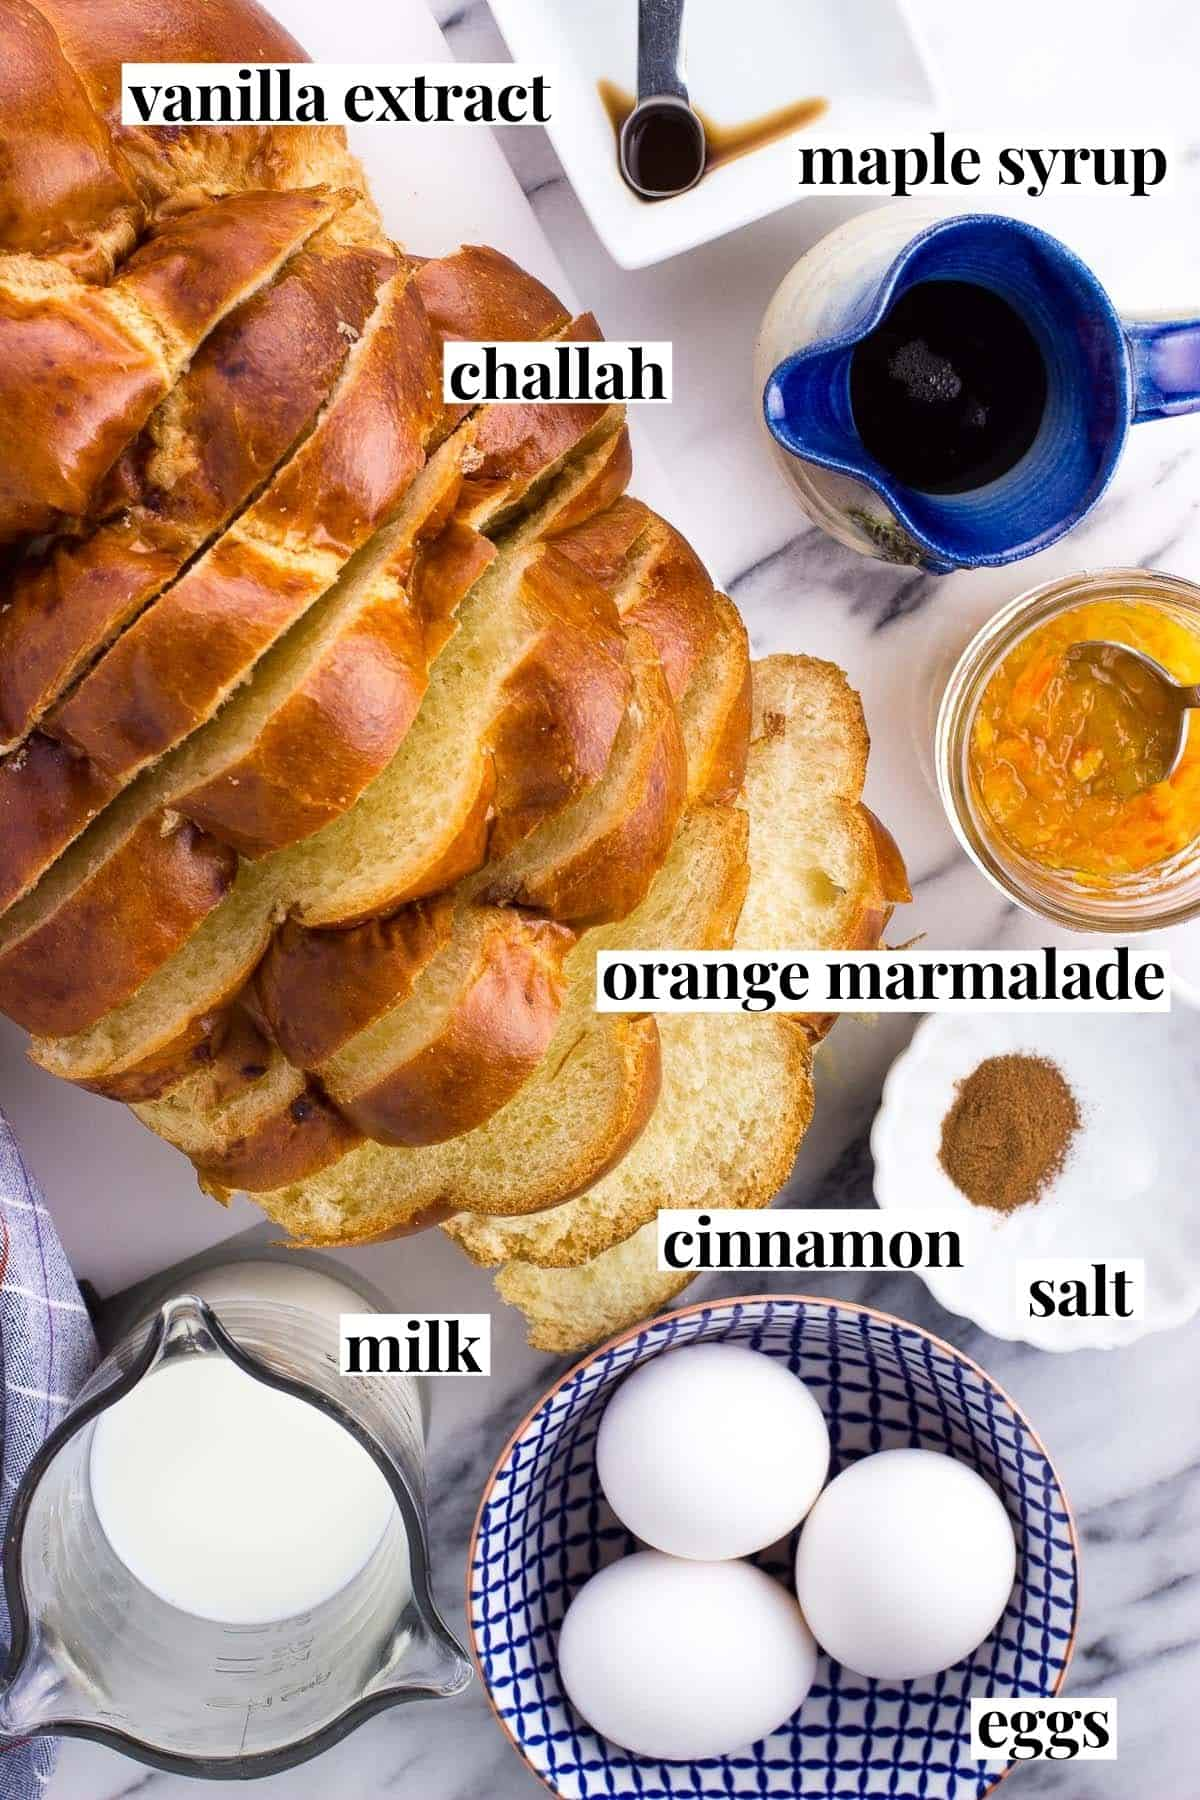 Labeled challah french toast ingredients on a marble board.